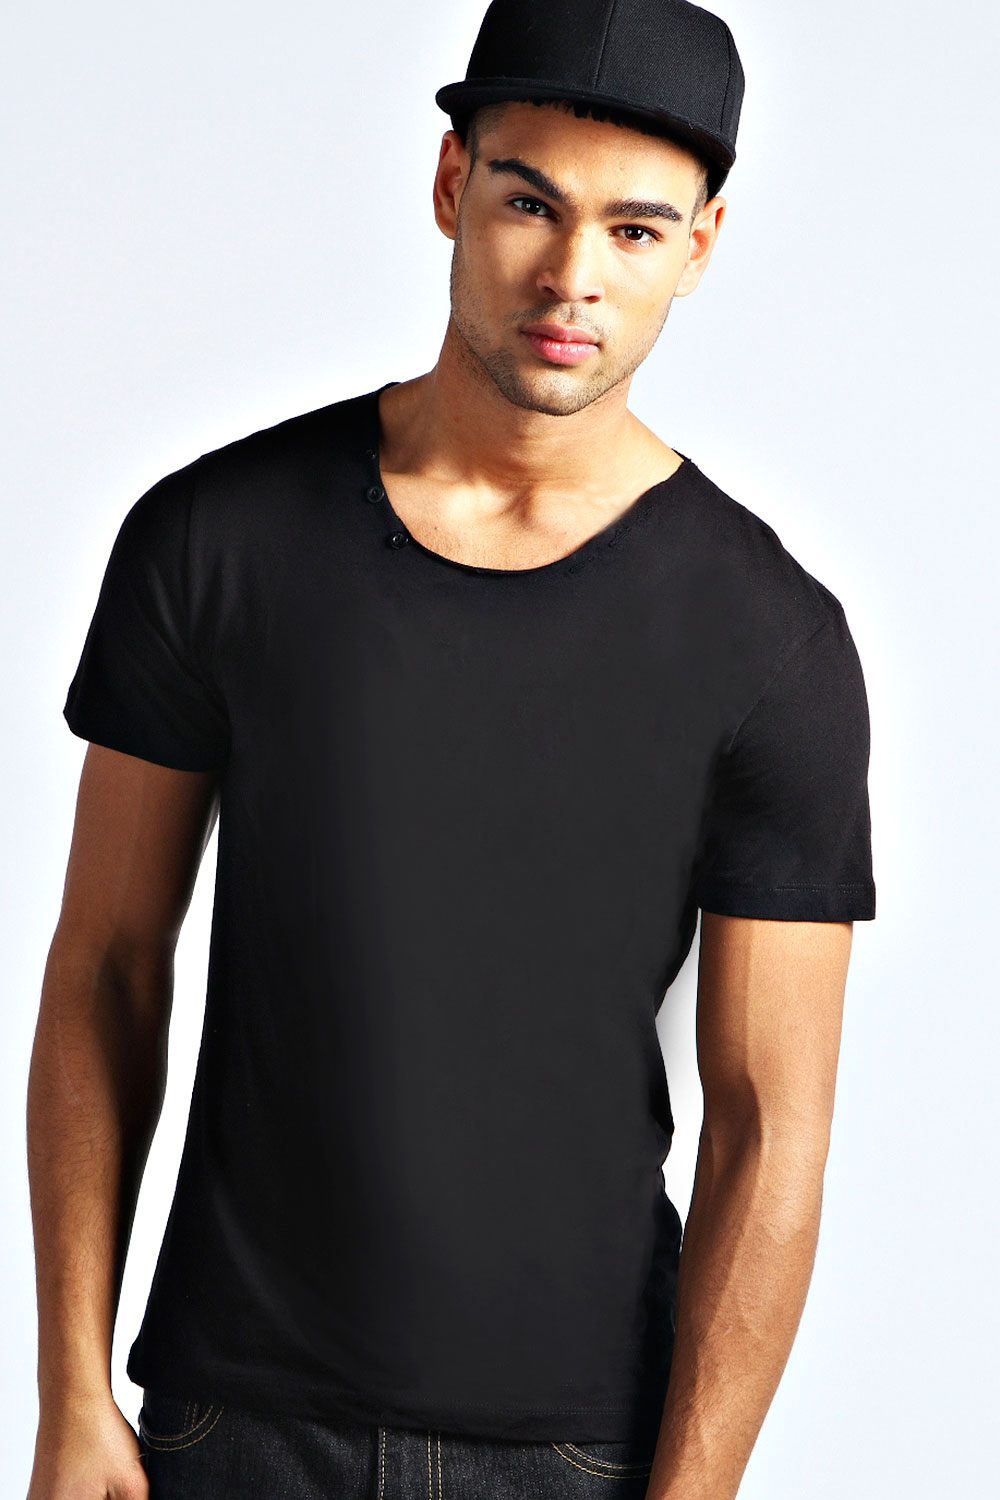 Wholesale V-Neck T-Shirts in Bulk. We offer a variety of V-Neck T-Shirts and hope to add more in the future. We increasingly have requests for V-Neck T-Shirts, so we created a .